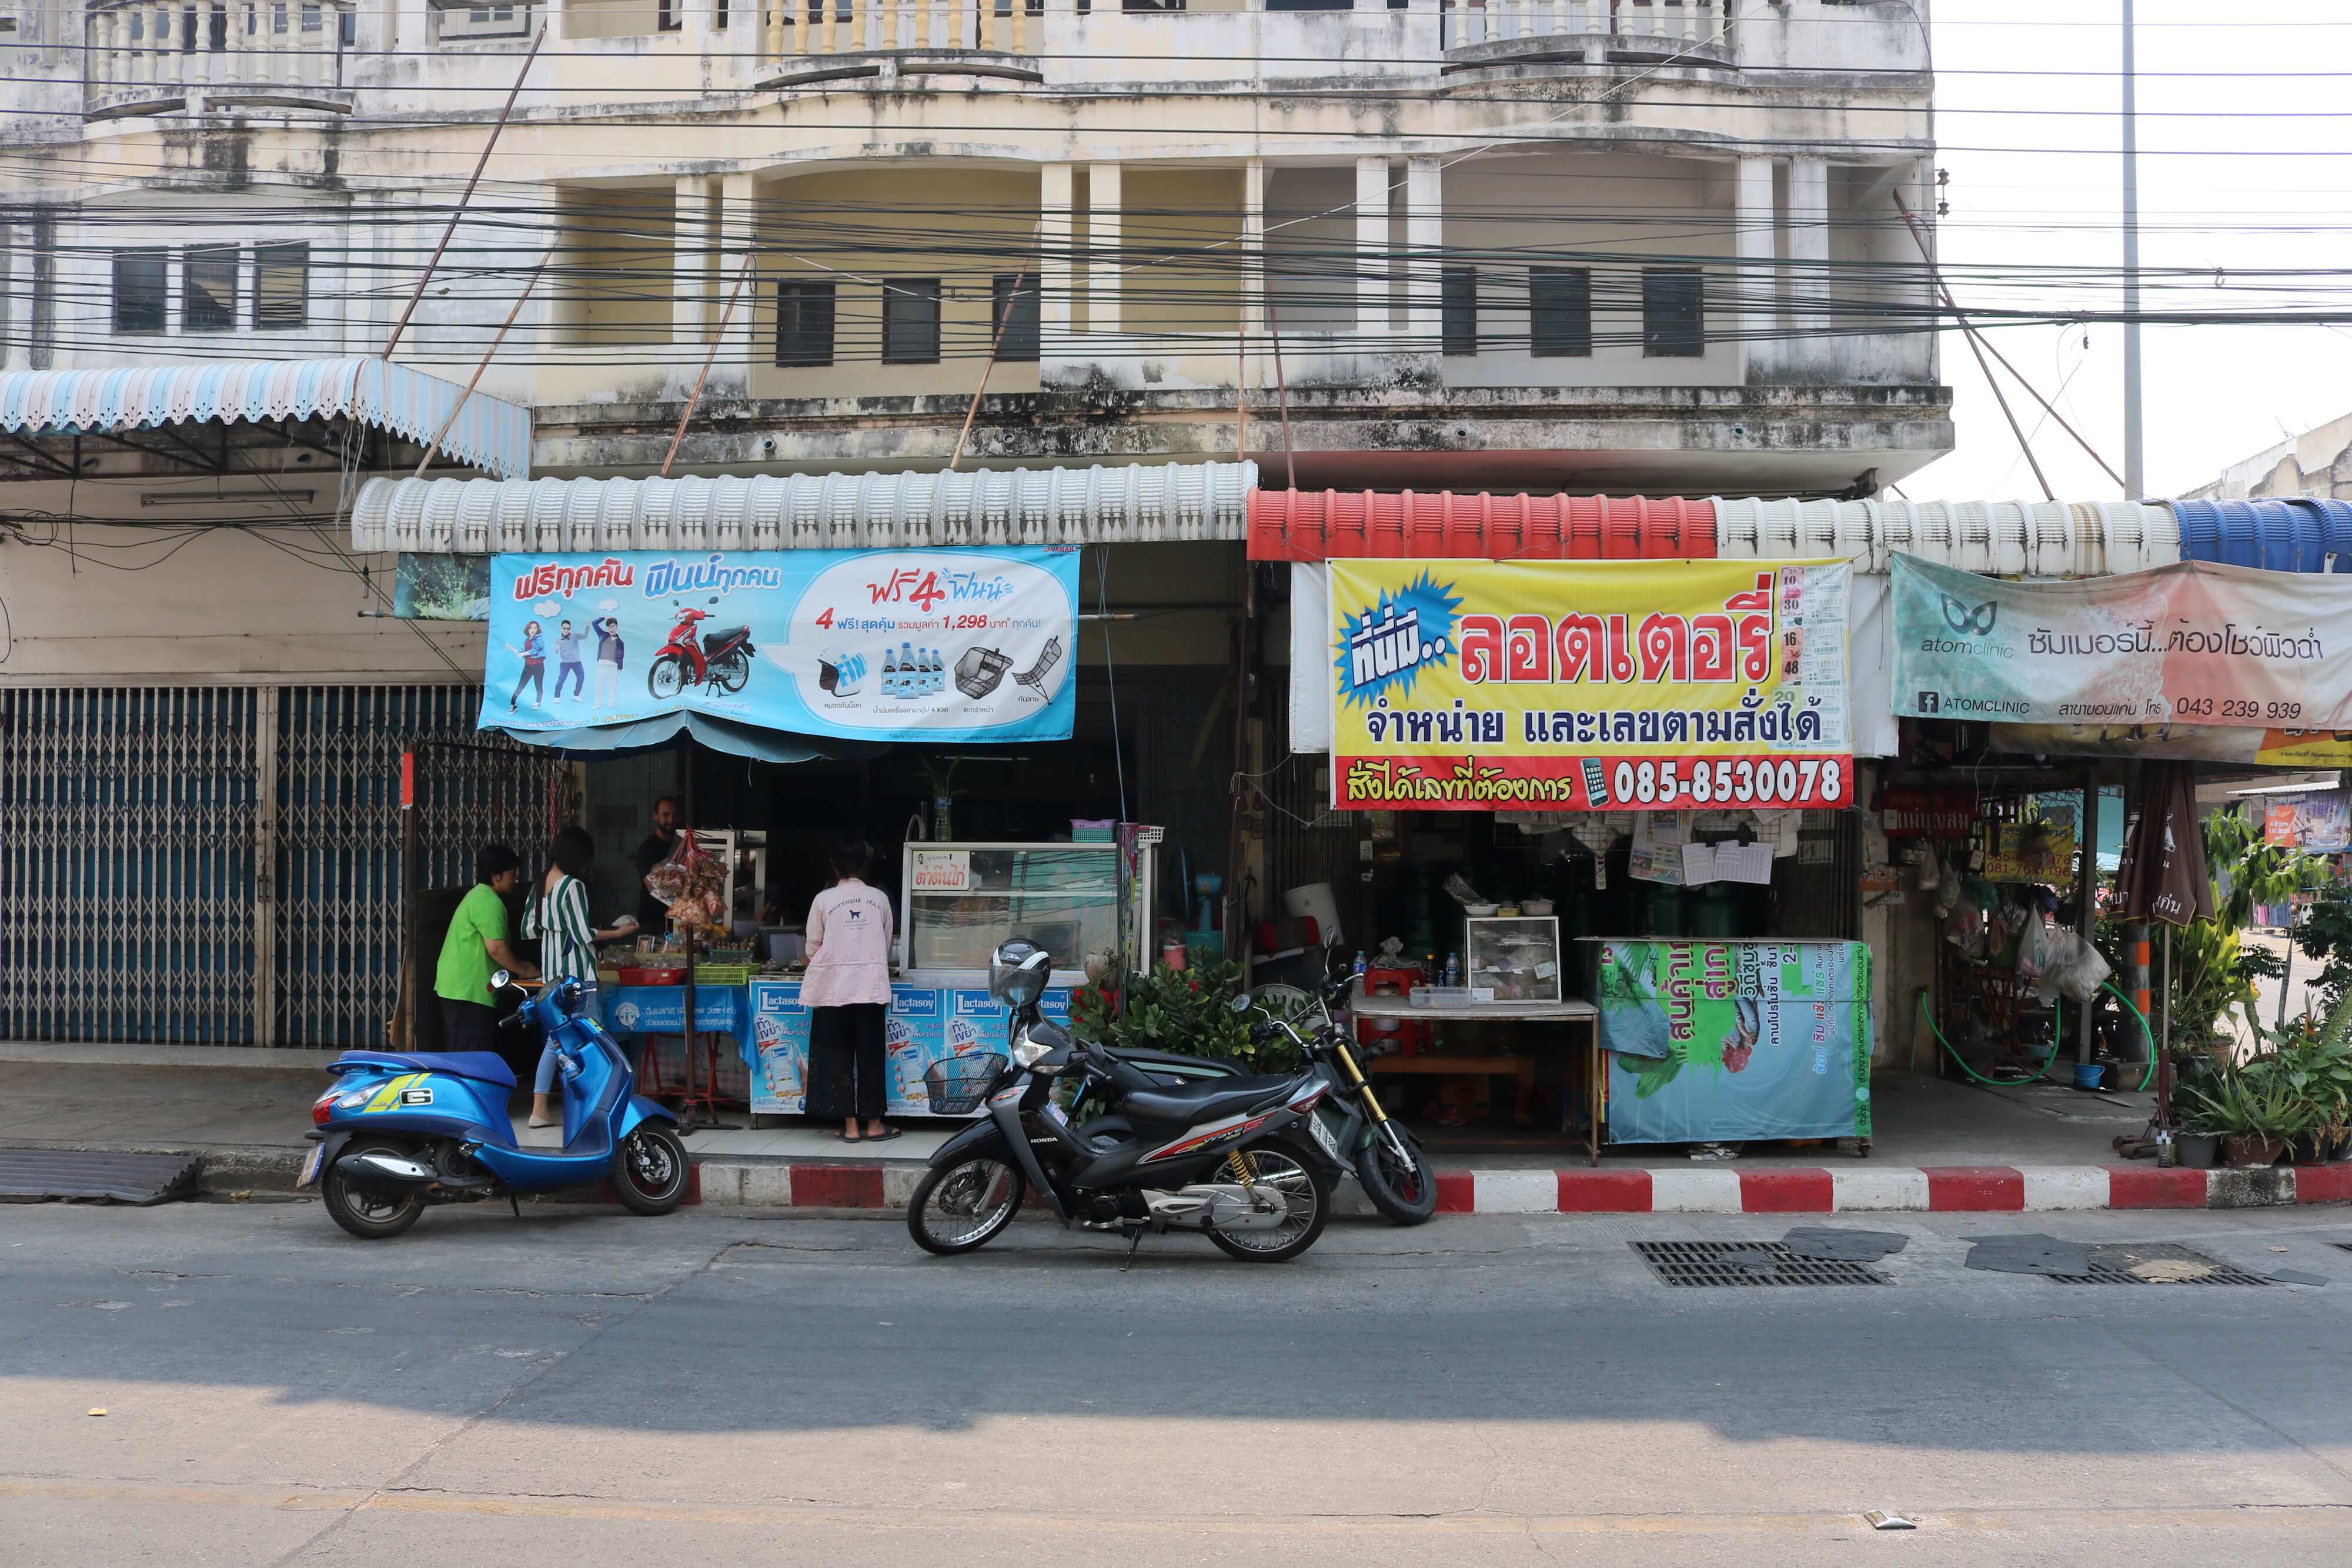 Local food and a great atmosphere, I recommend a visit for a lunch of Laos style papaya salad, a sour fish, and a plate of fried chicken with sticky rice.